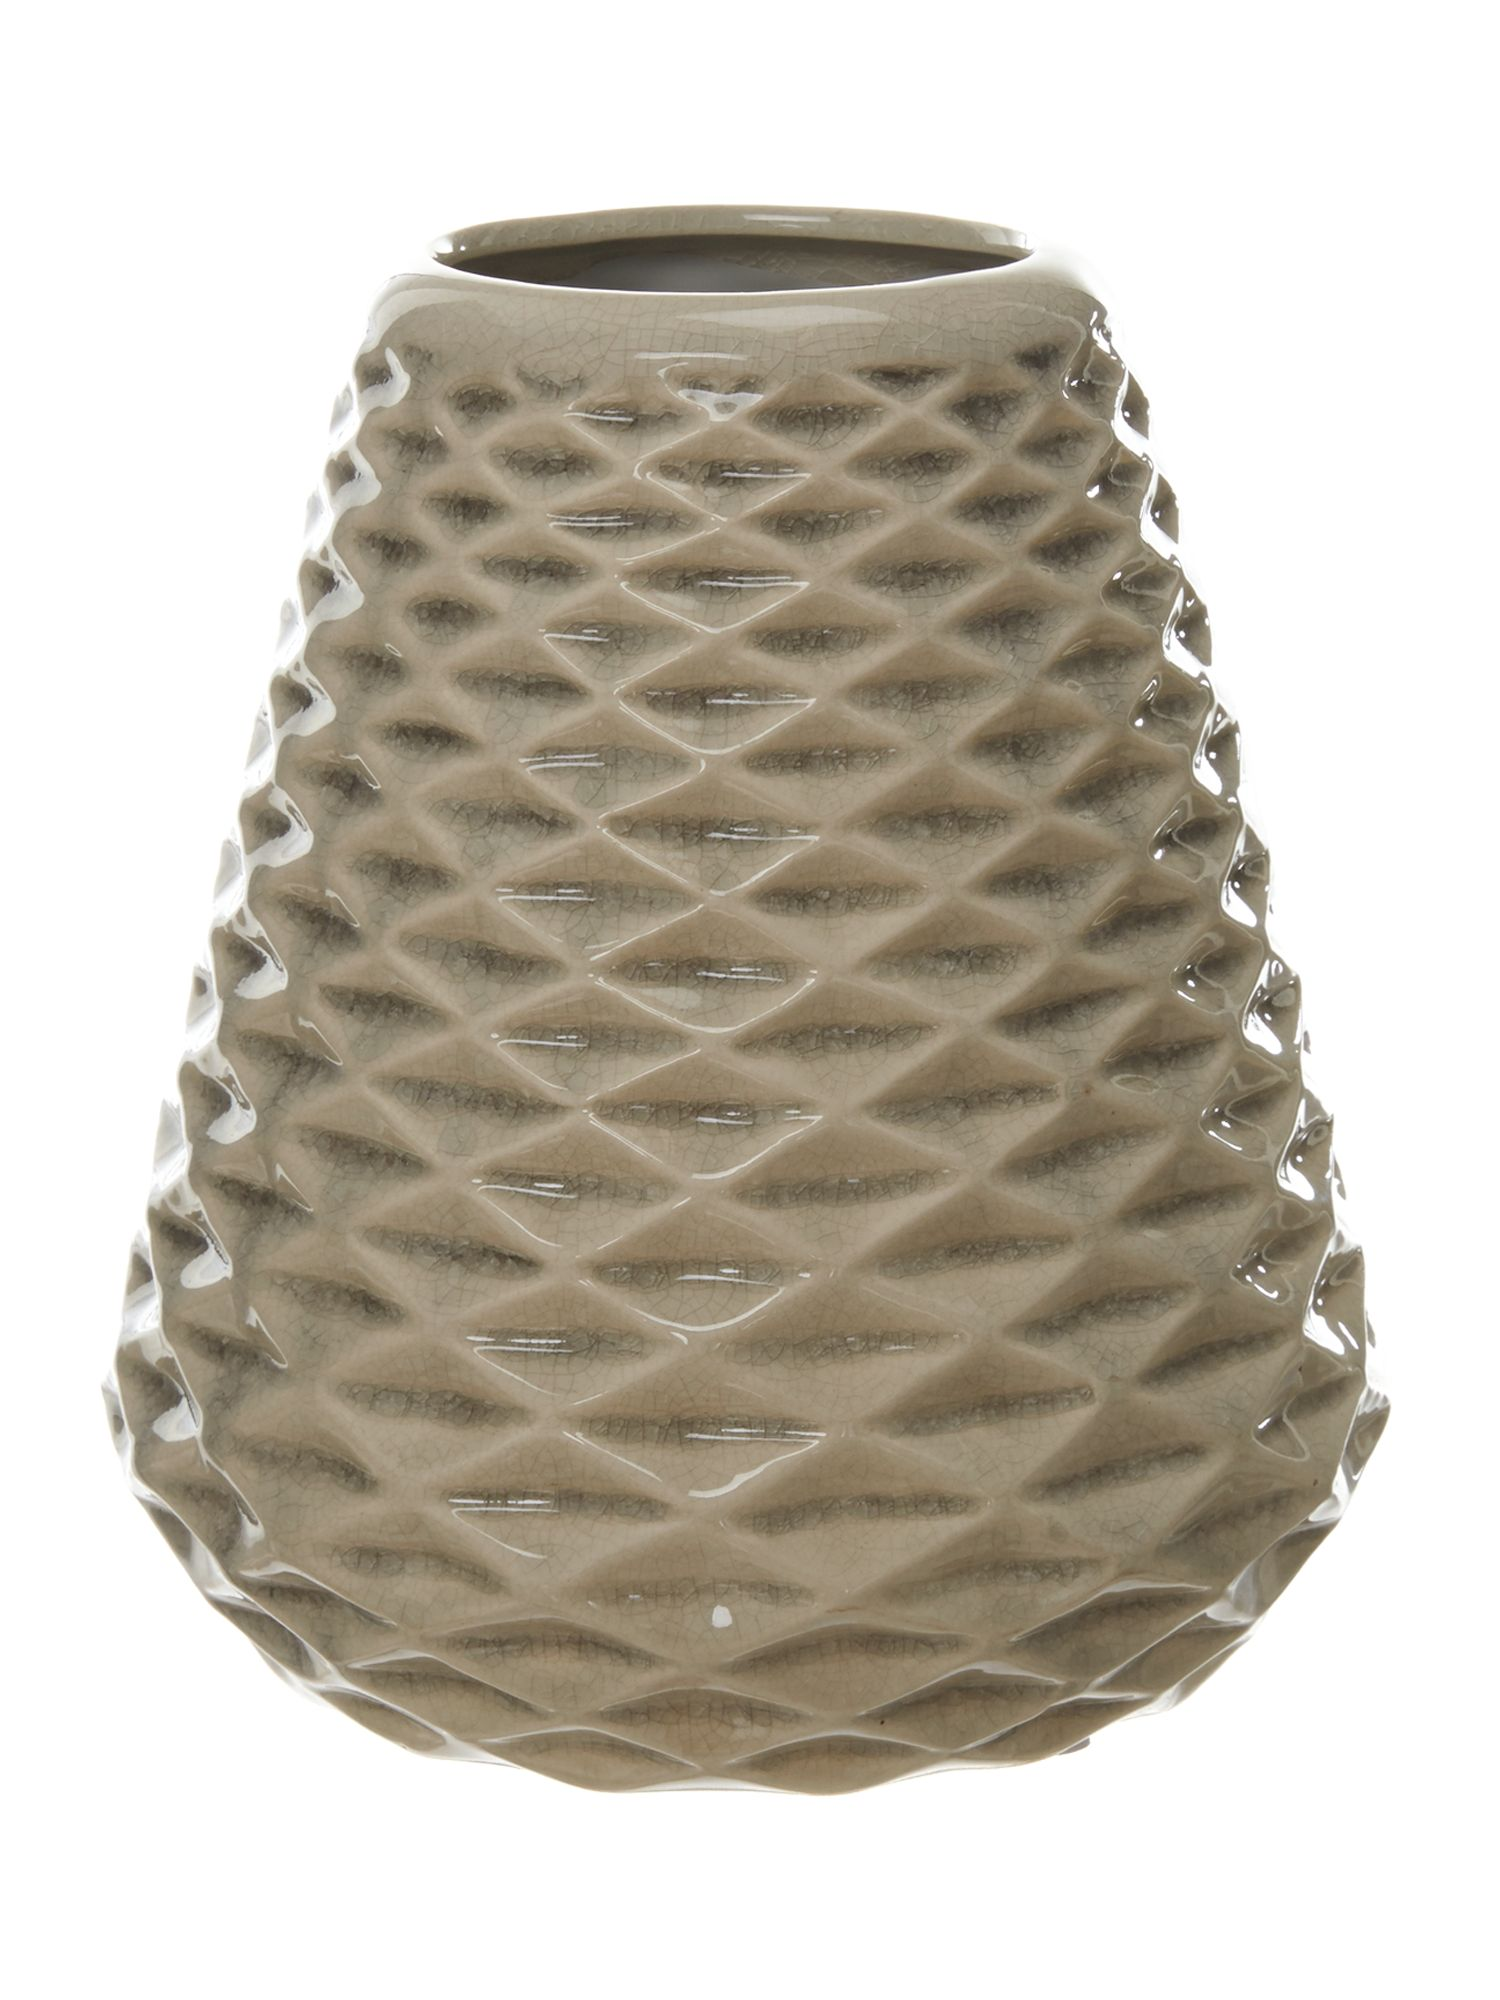 Large Conical ceramic Vase in rainy day